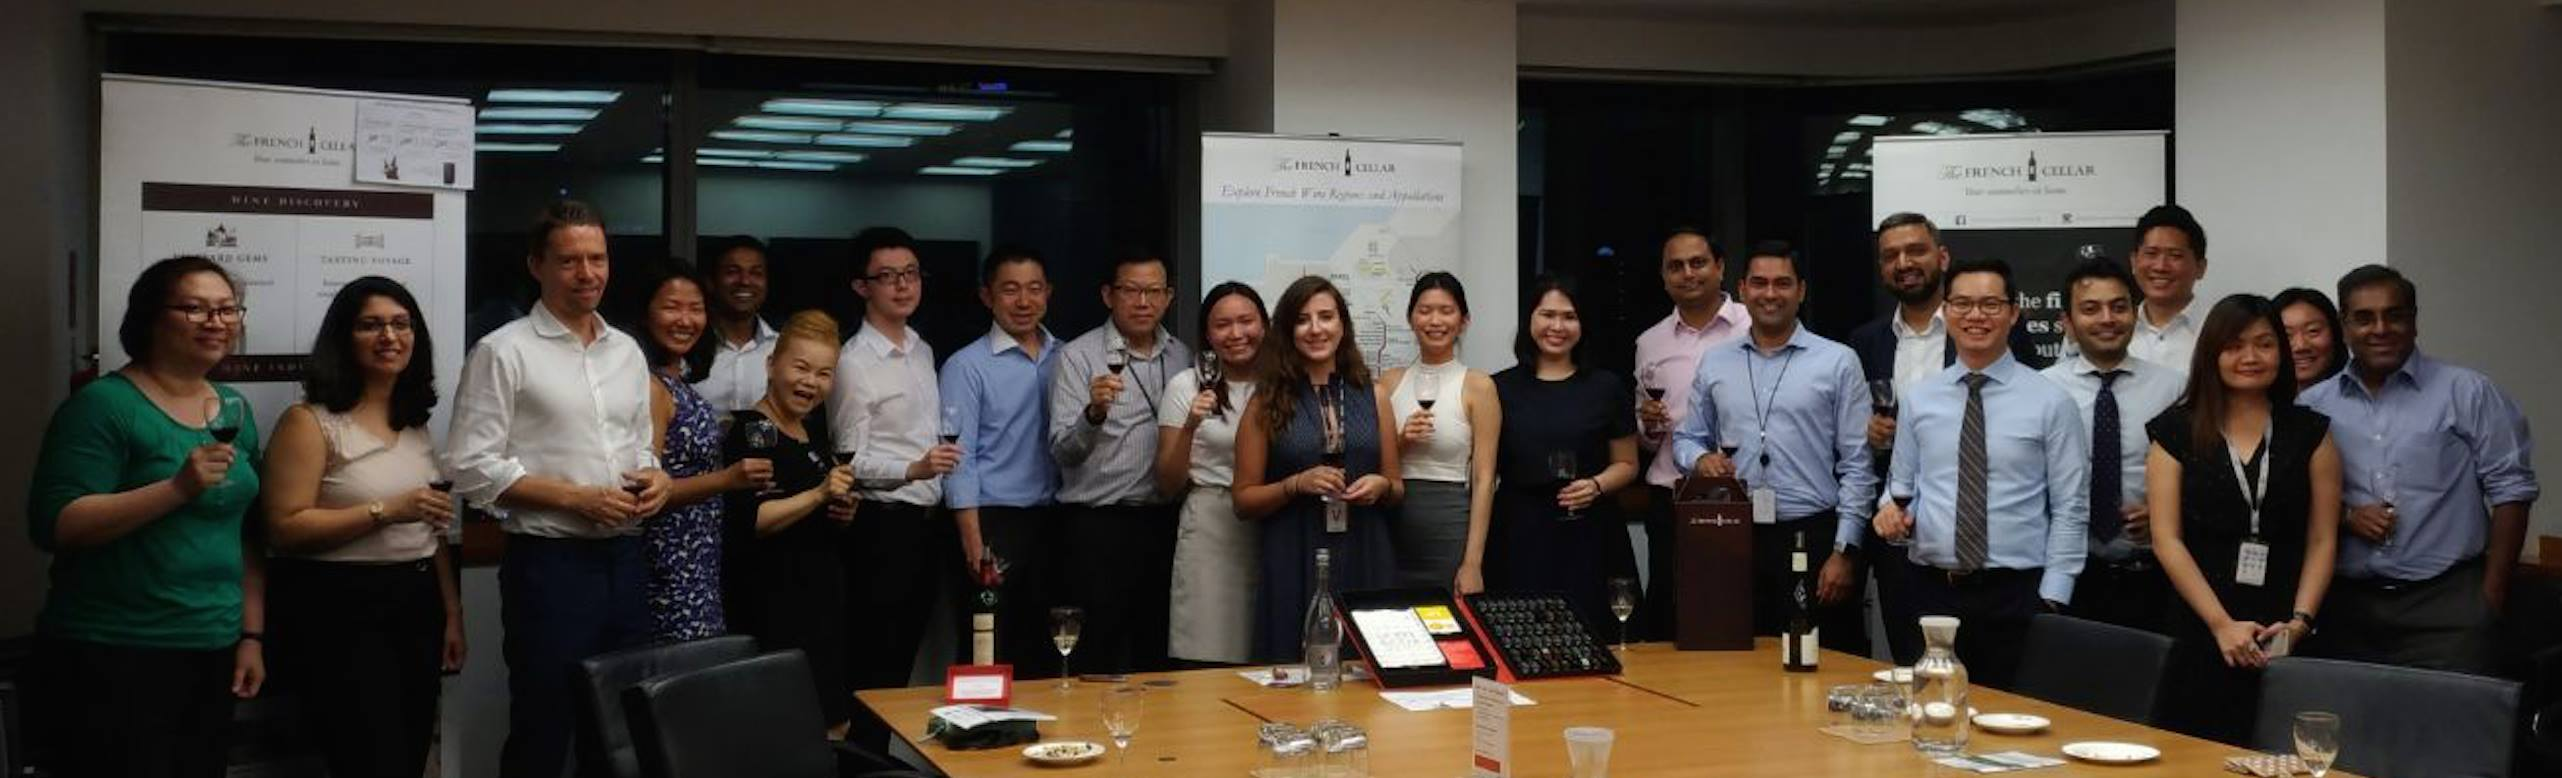 Corporate Wine Tasting with HSBC Singapore